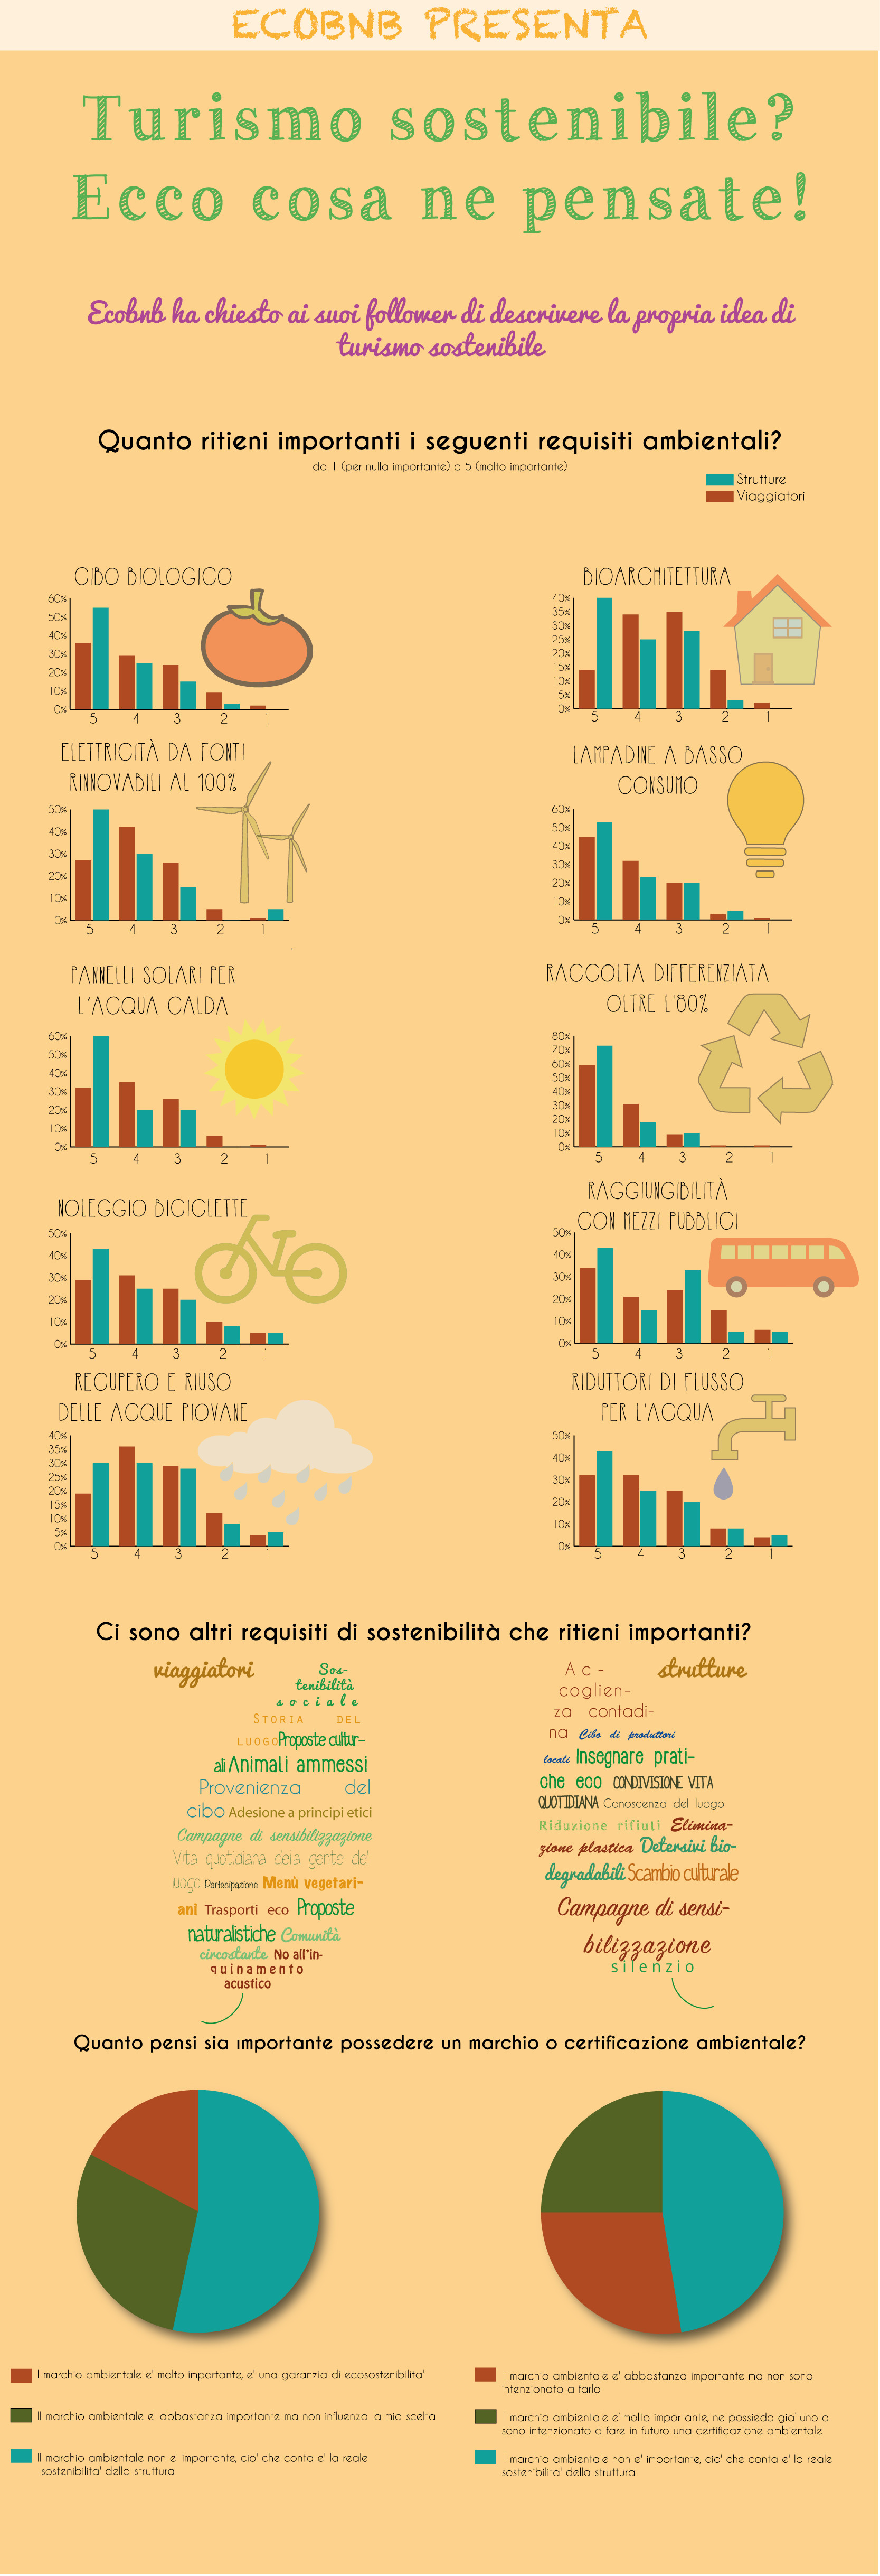 infographic survey about sustainable tourism